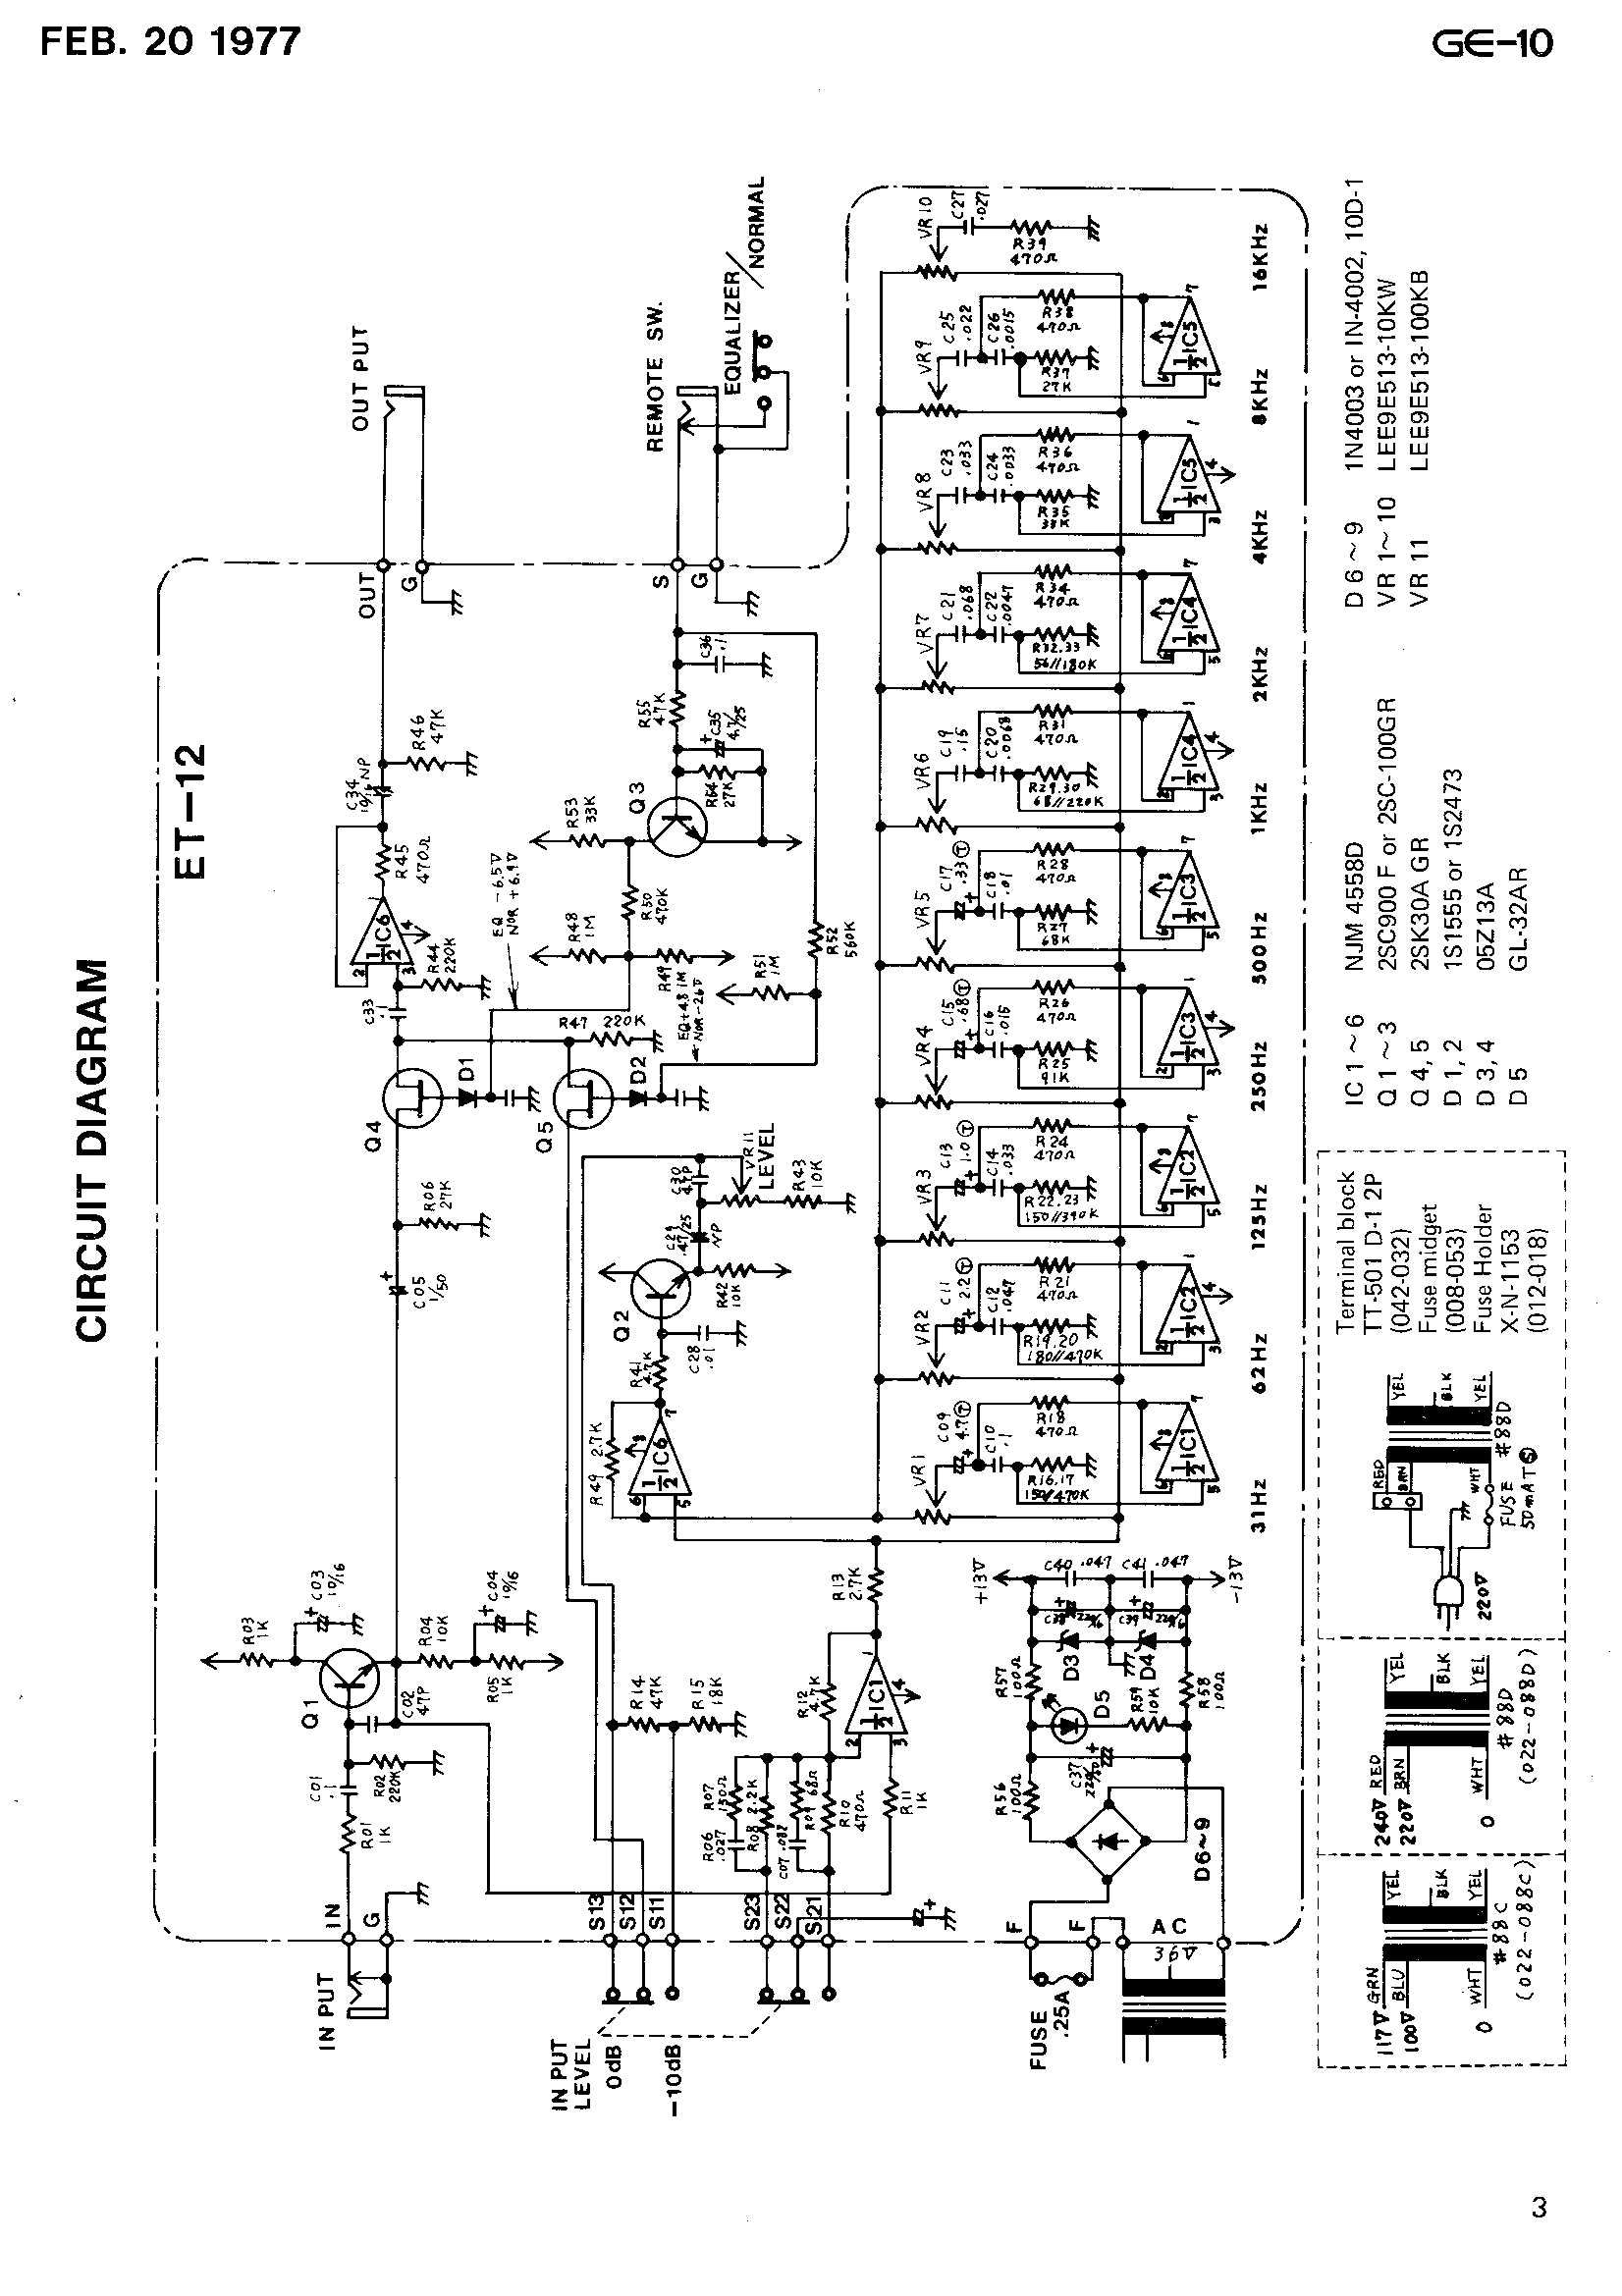 Boss Ge 10 Service Note P 3 Circuit Diagram